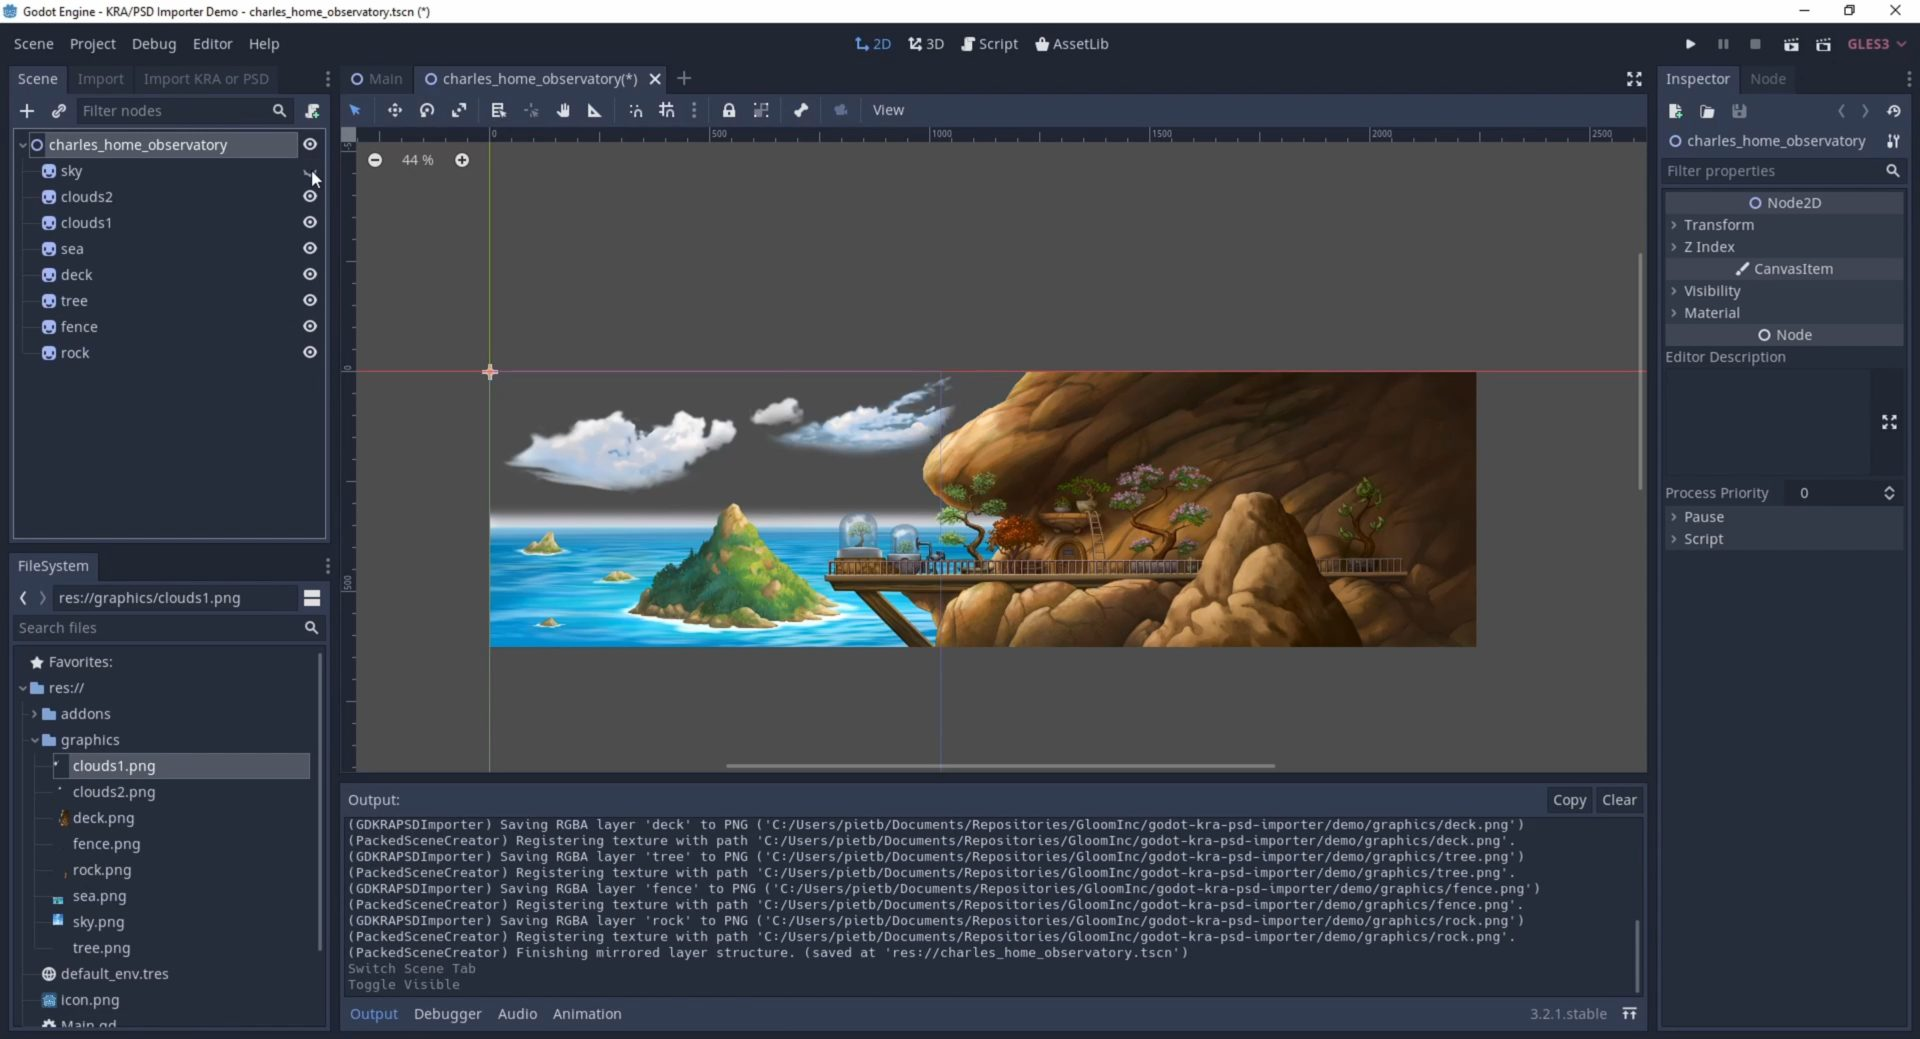 Gamechuck's FOSS pipeline: Asset importer tool for Godot engine